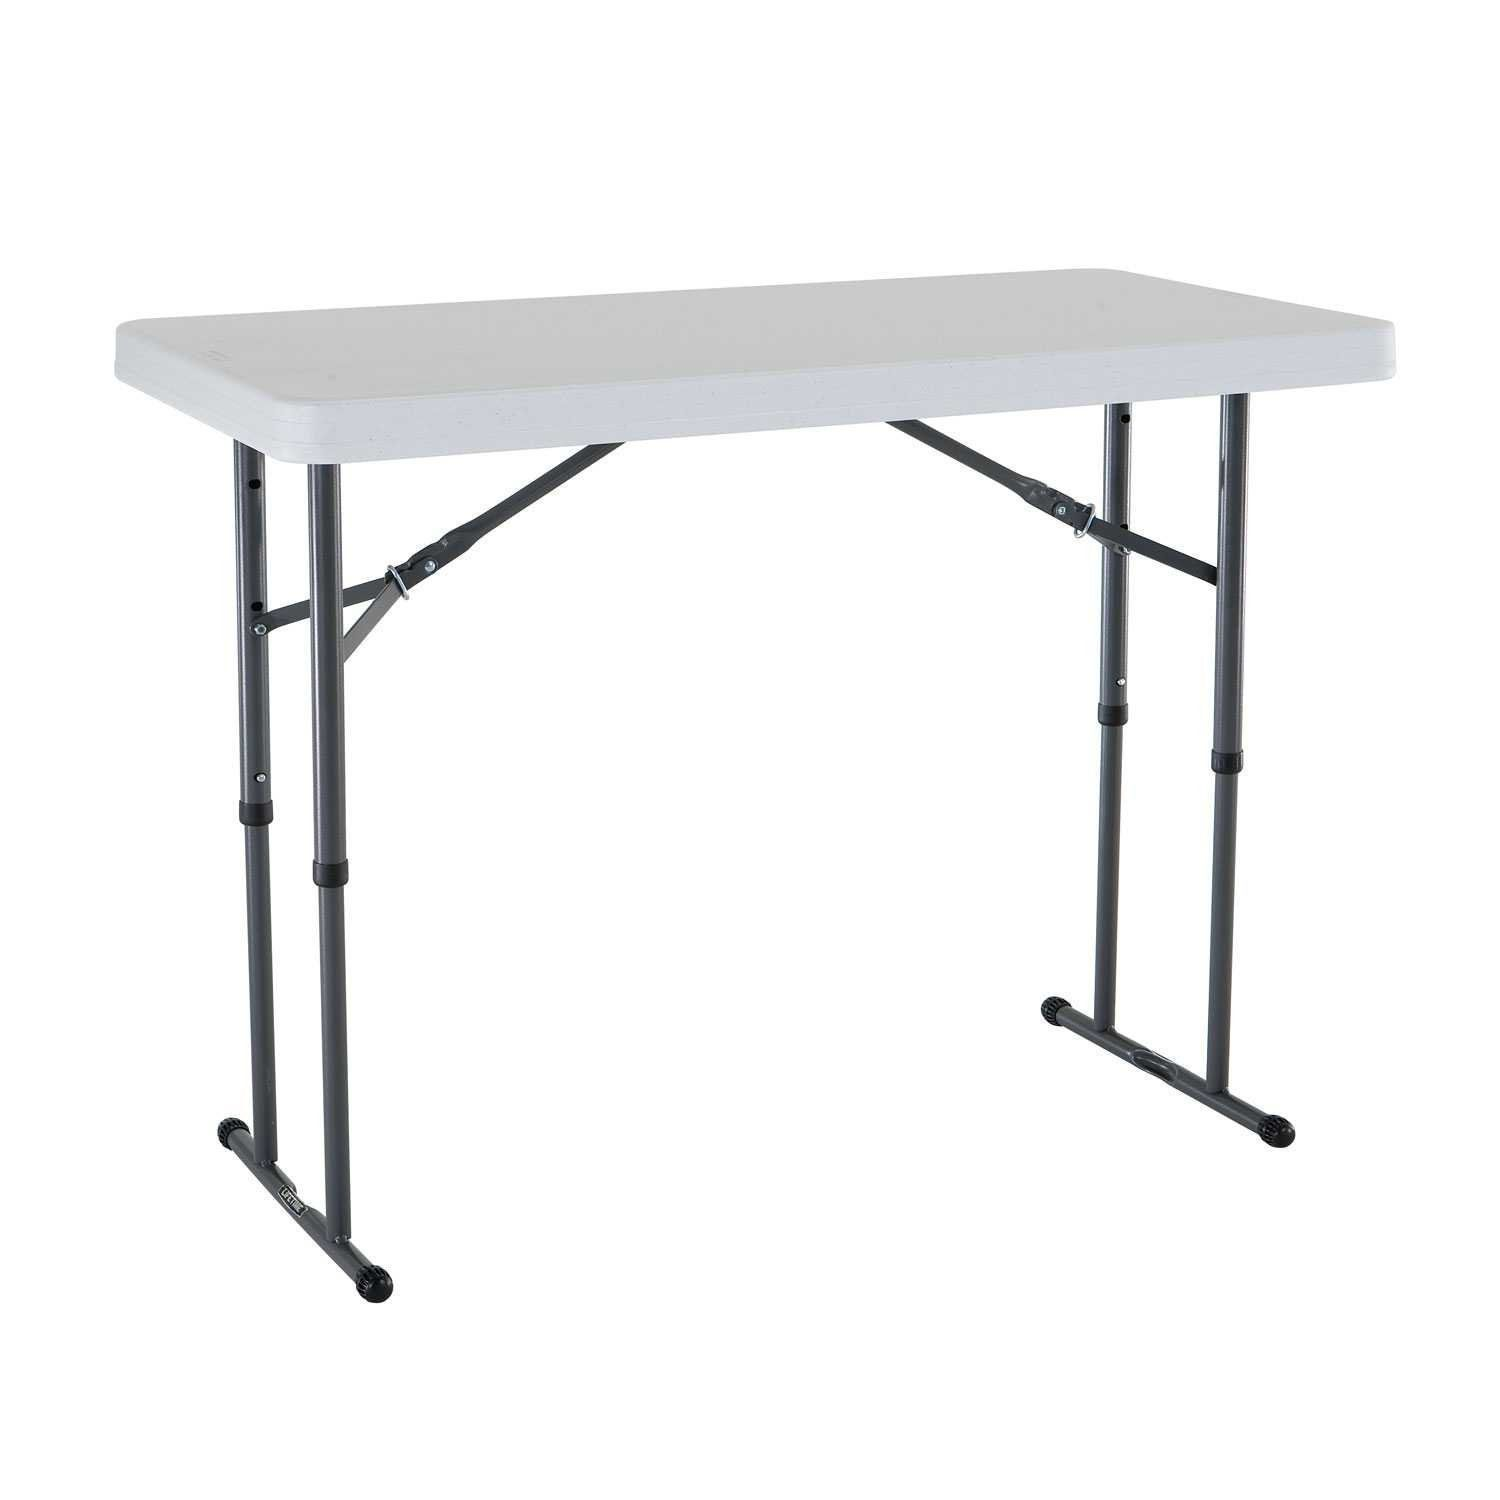 adjustable height folding table kids serving craft tables. Black Bedroom Furniture Sets. Home Design Ideas